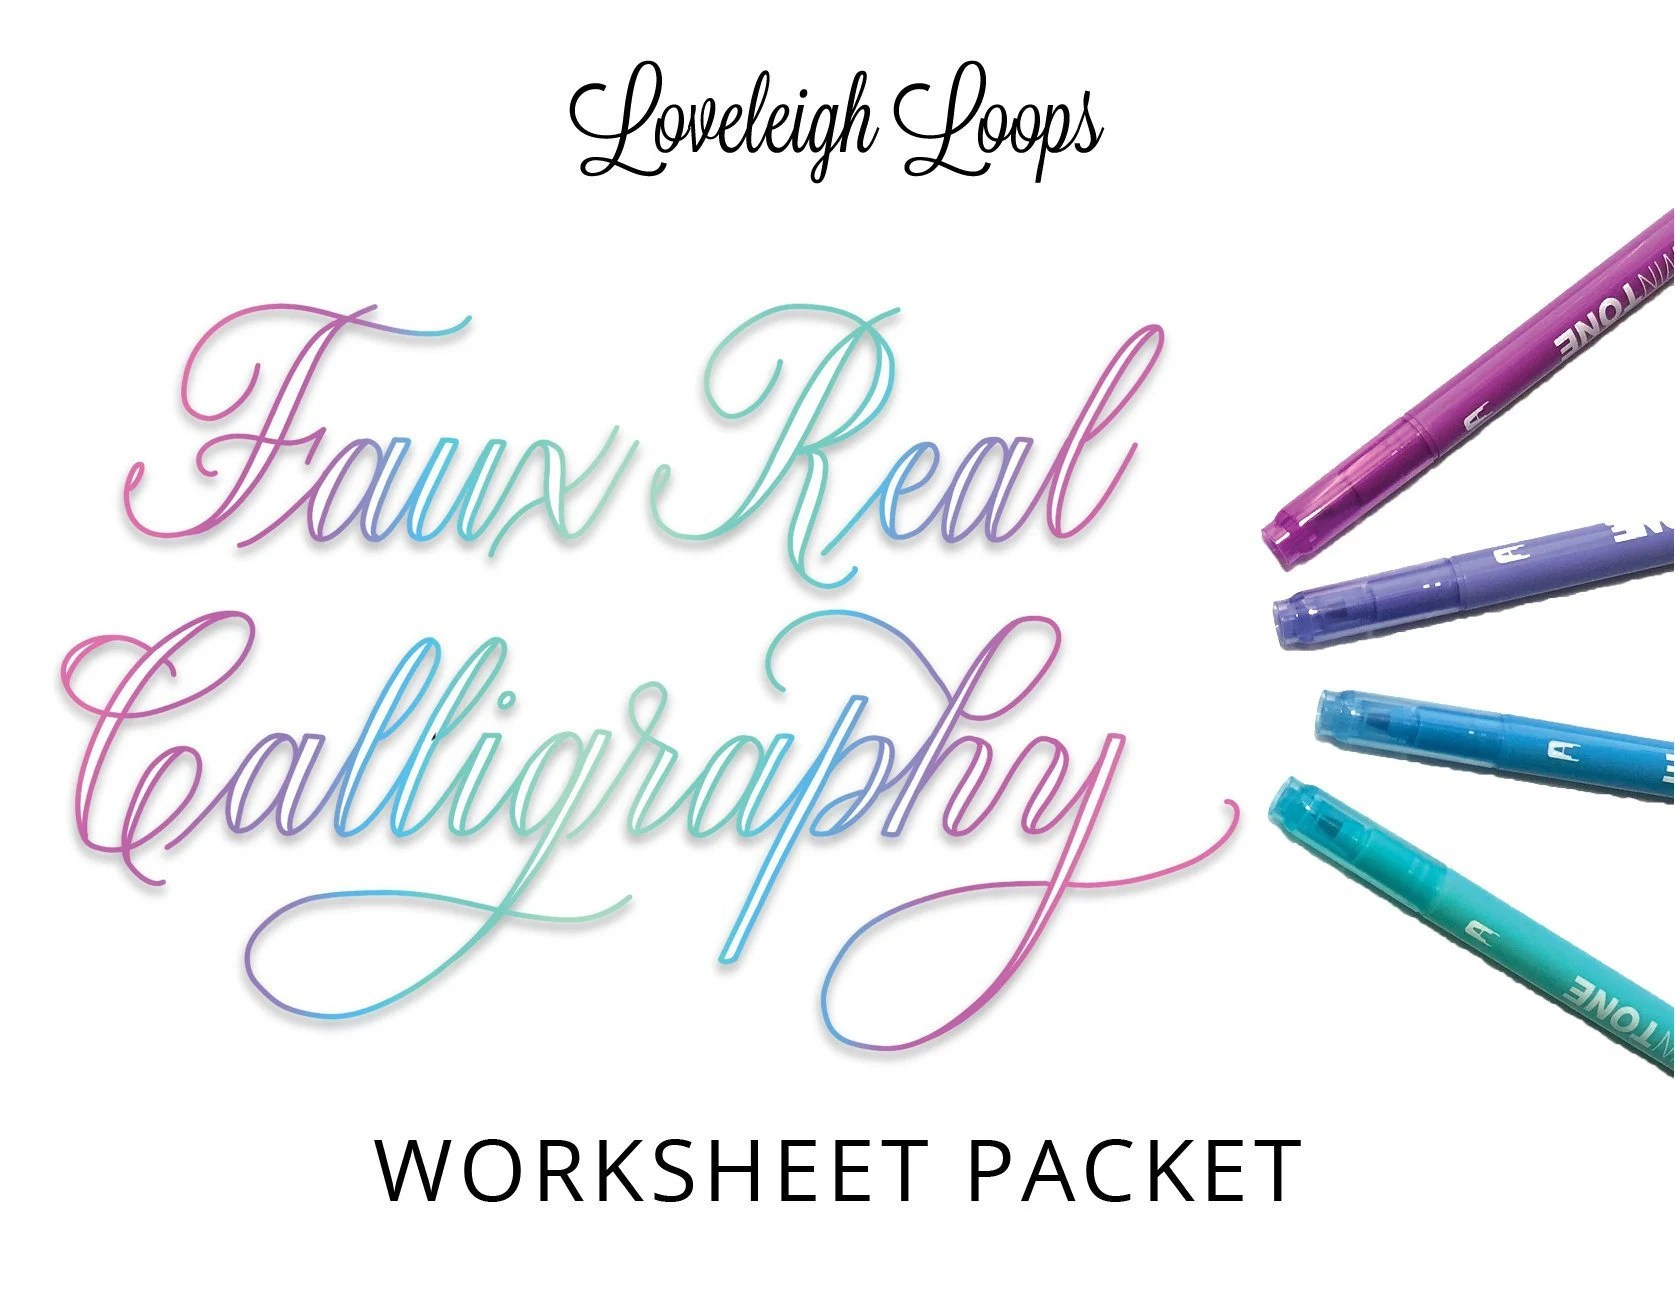 Faux Real Calligraphy Worksheet Packet